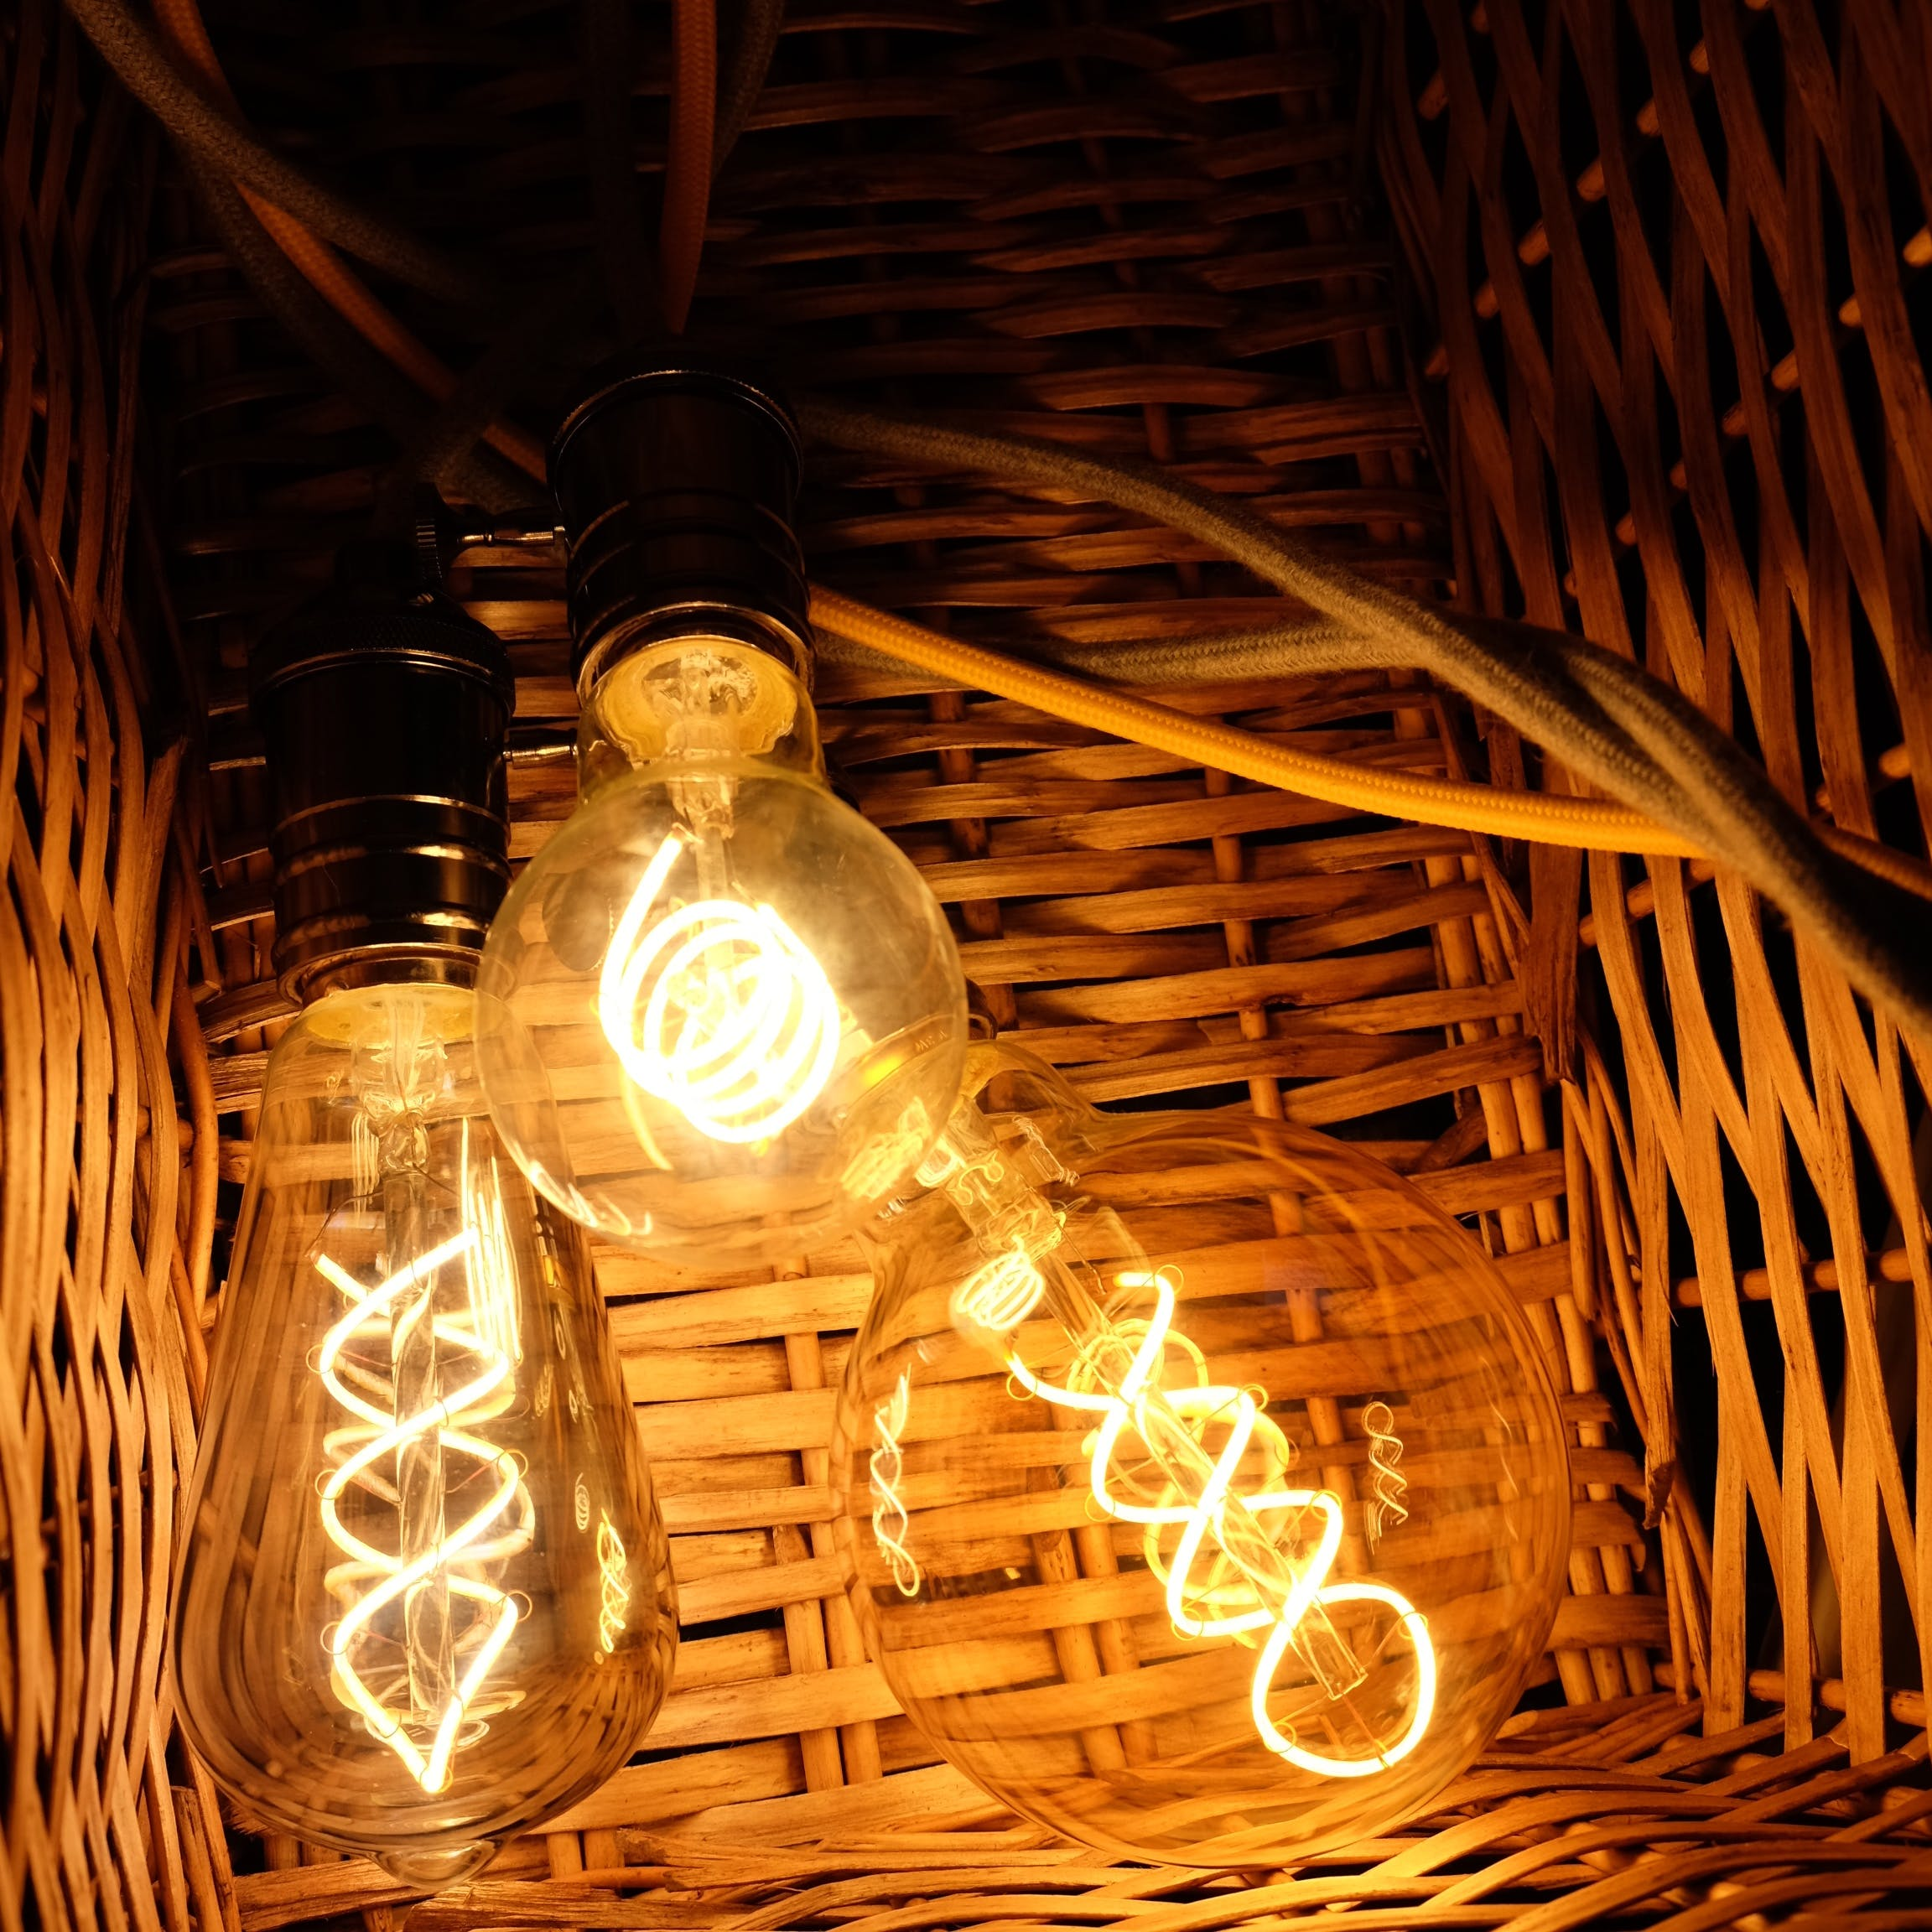 Free stock photo of Led filament light bulbs Ledsupermarket.com